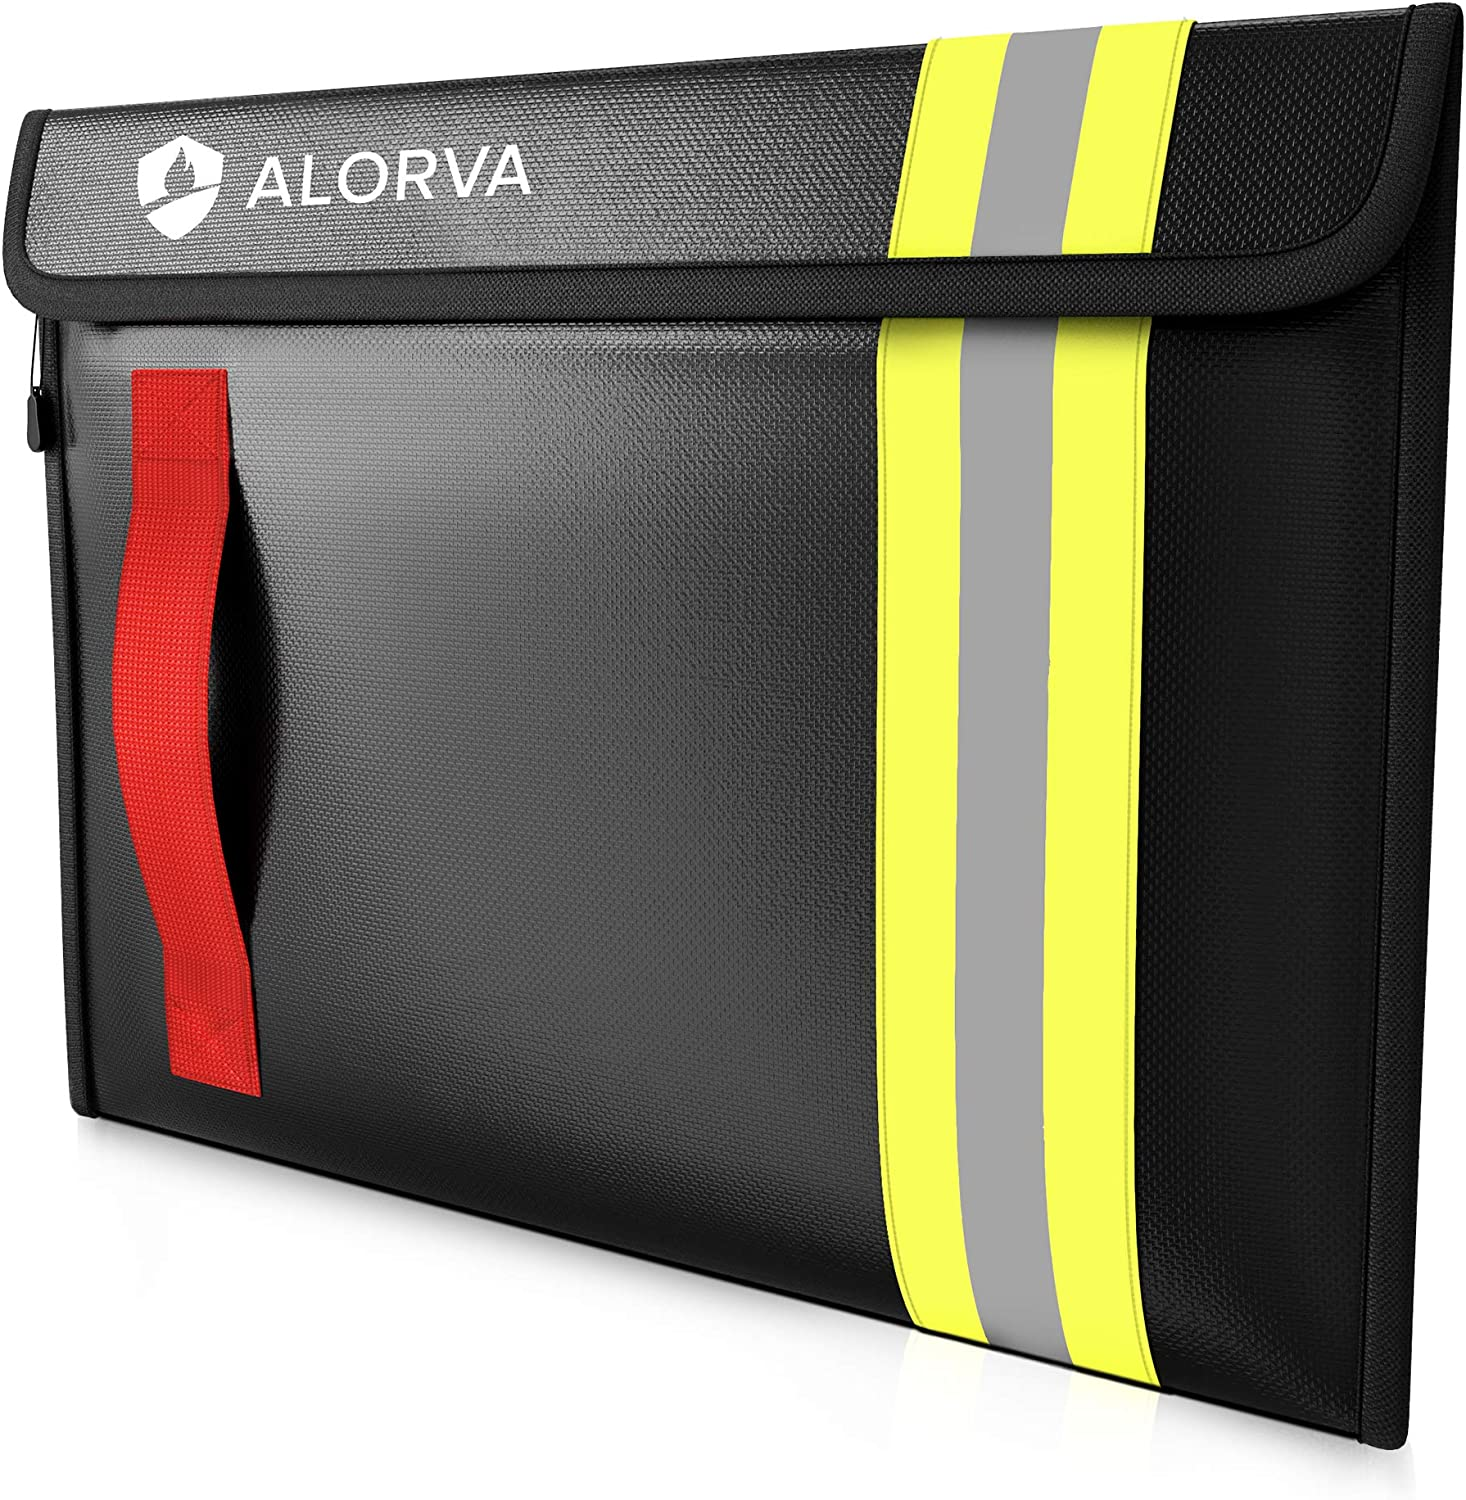 Alorva Fireproof & Water-Resistant Document Bag – 15.5 x 11 x 3-inch Pouch for Legal Documents & Valuables - Double-Layered Zippered Protection – Firefighter Designed (Black)